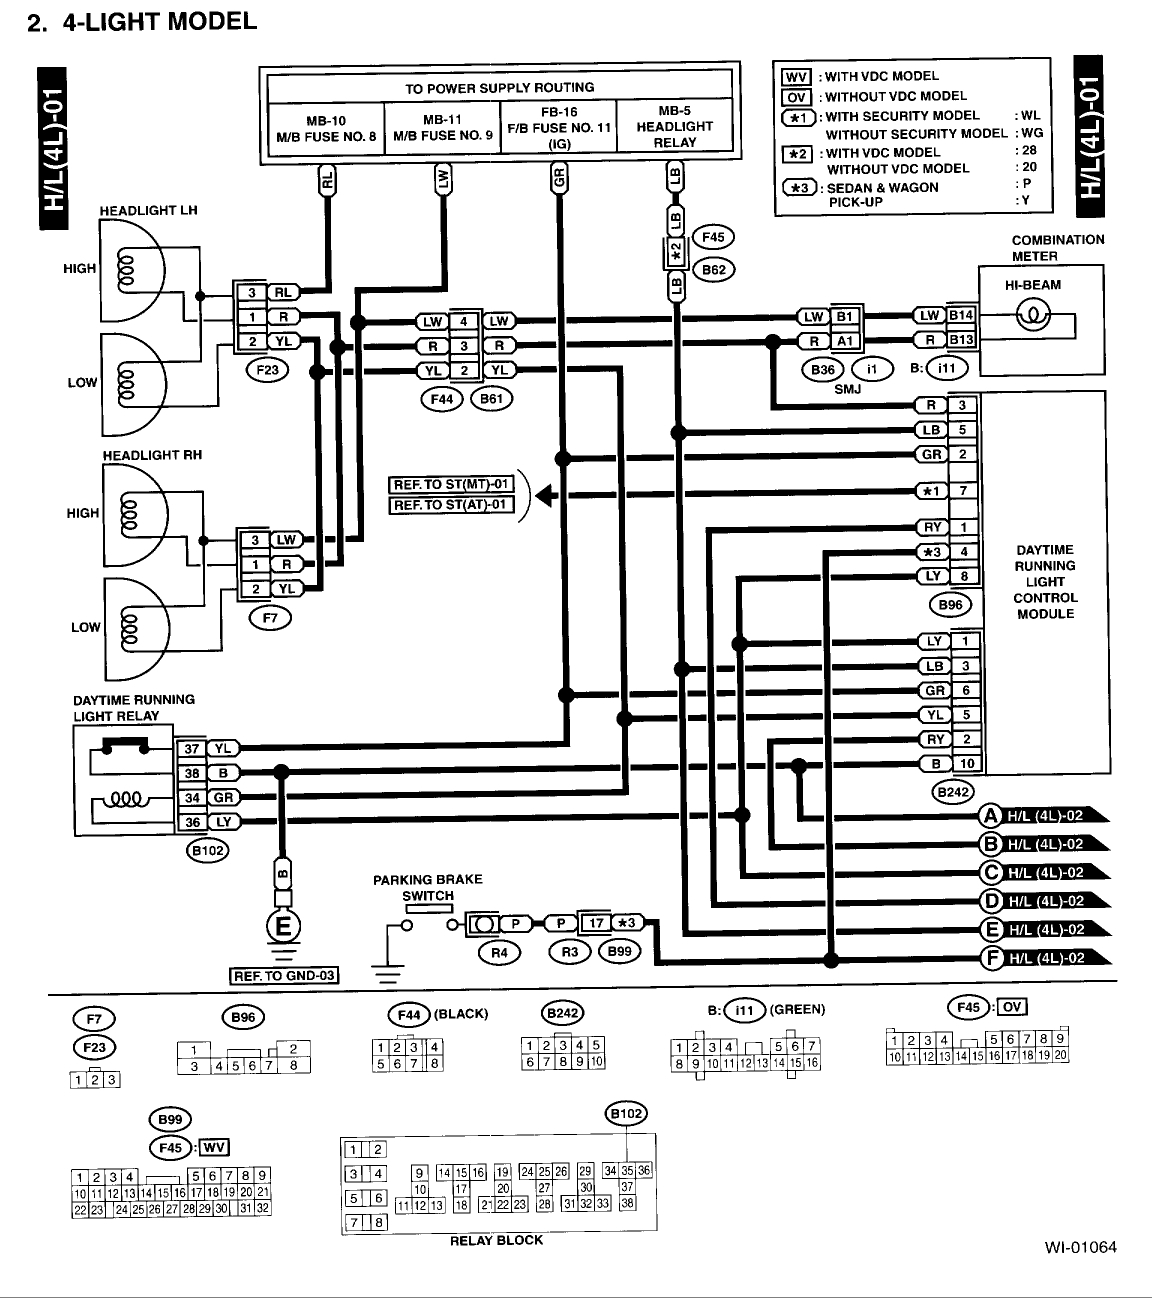 hight resolution of diagram likewise 1996 subaru legacy engine diagram on subaru 19901990 subaru legacy engine diagram wiring diagram